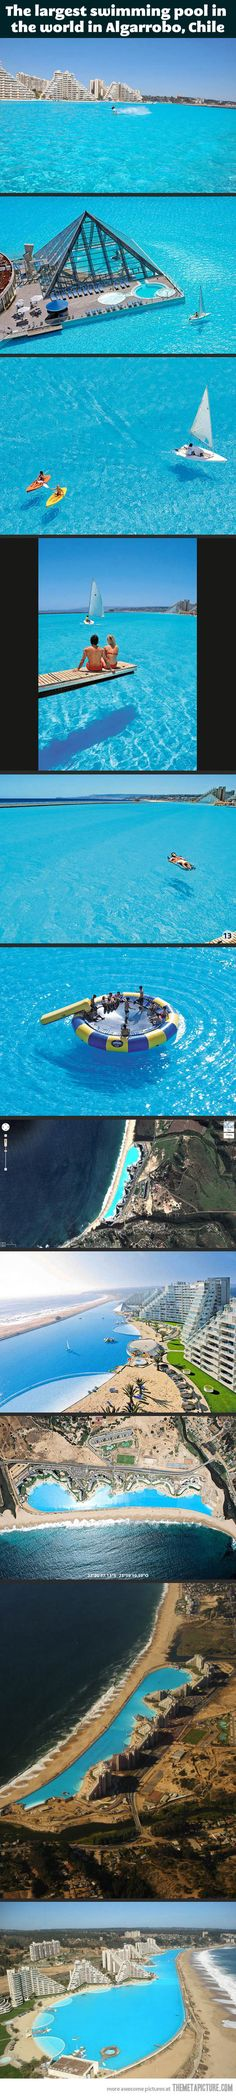 cool-swimming-pool-largest-world